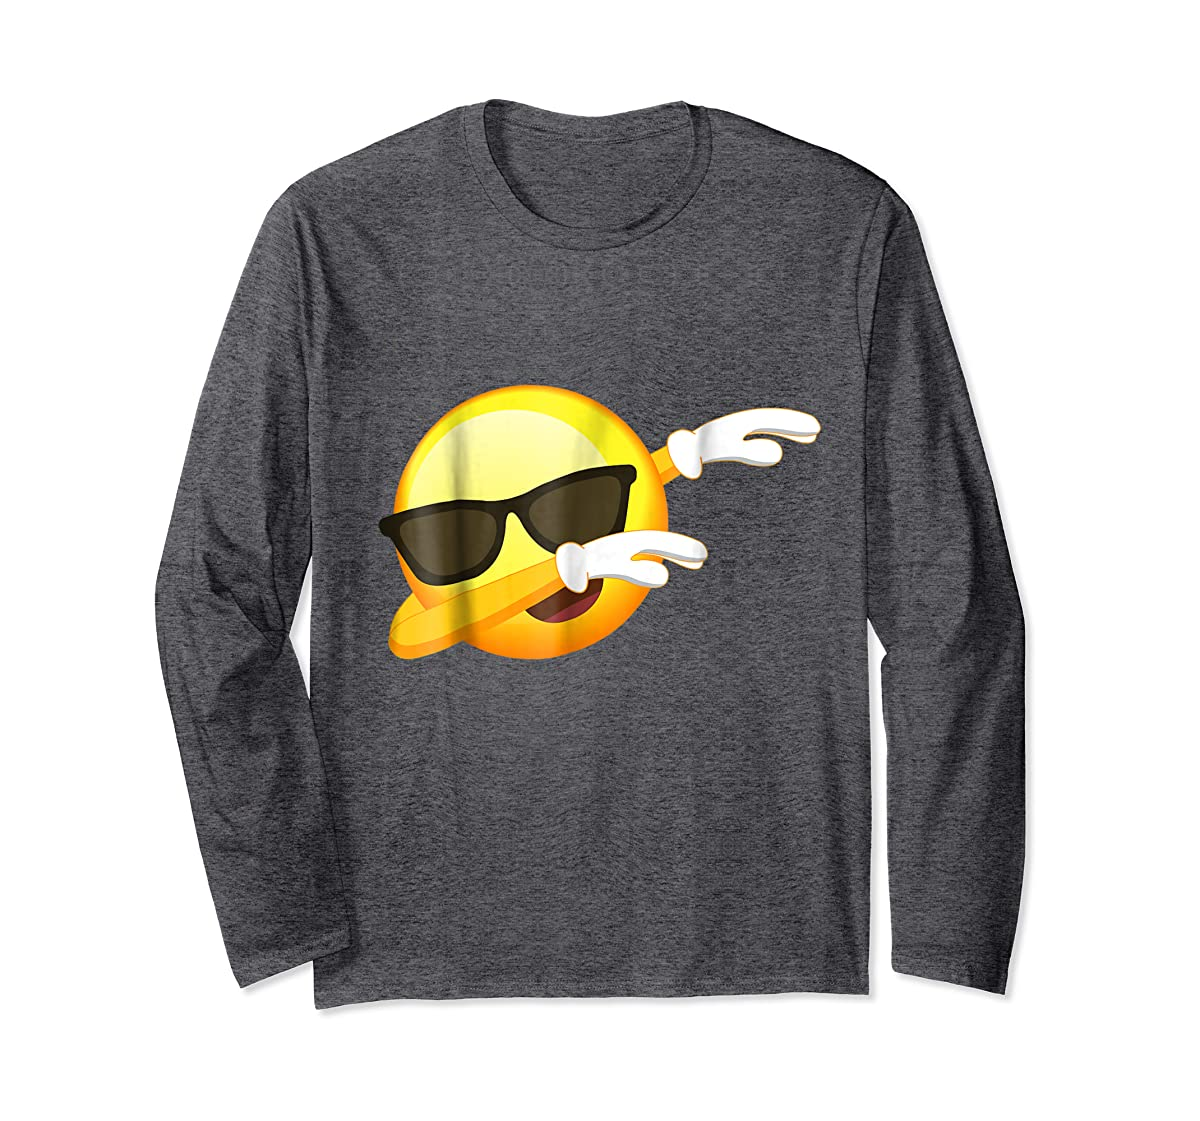 Funny Dabbing Emoji Shirt - Cool Emoji Dab T-Shirt-Long Sleeve-Dark Heather